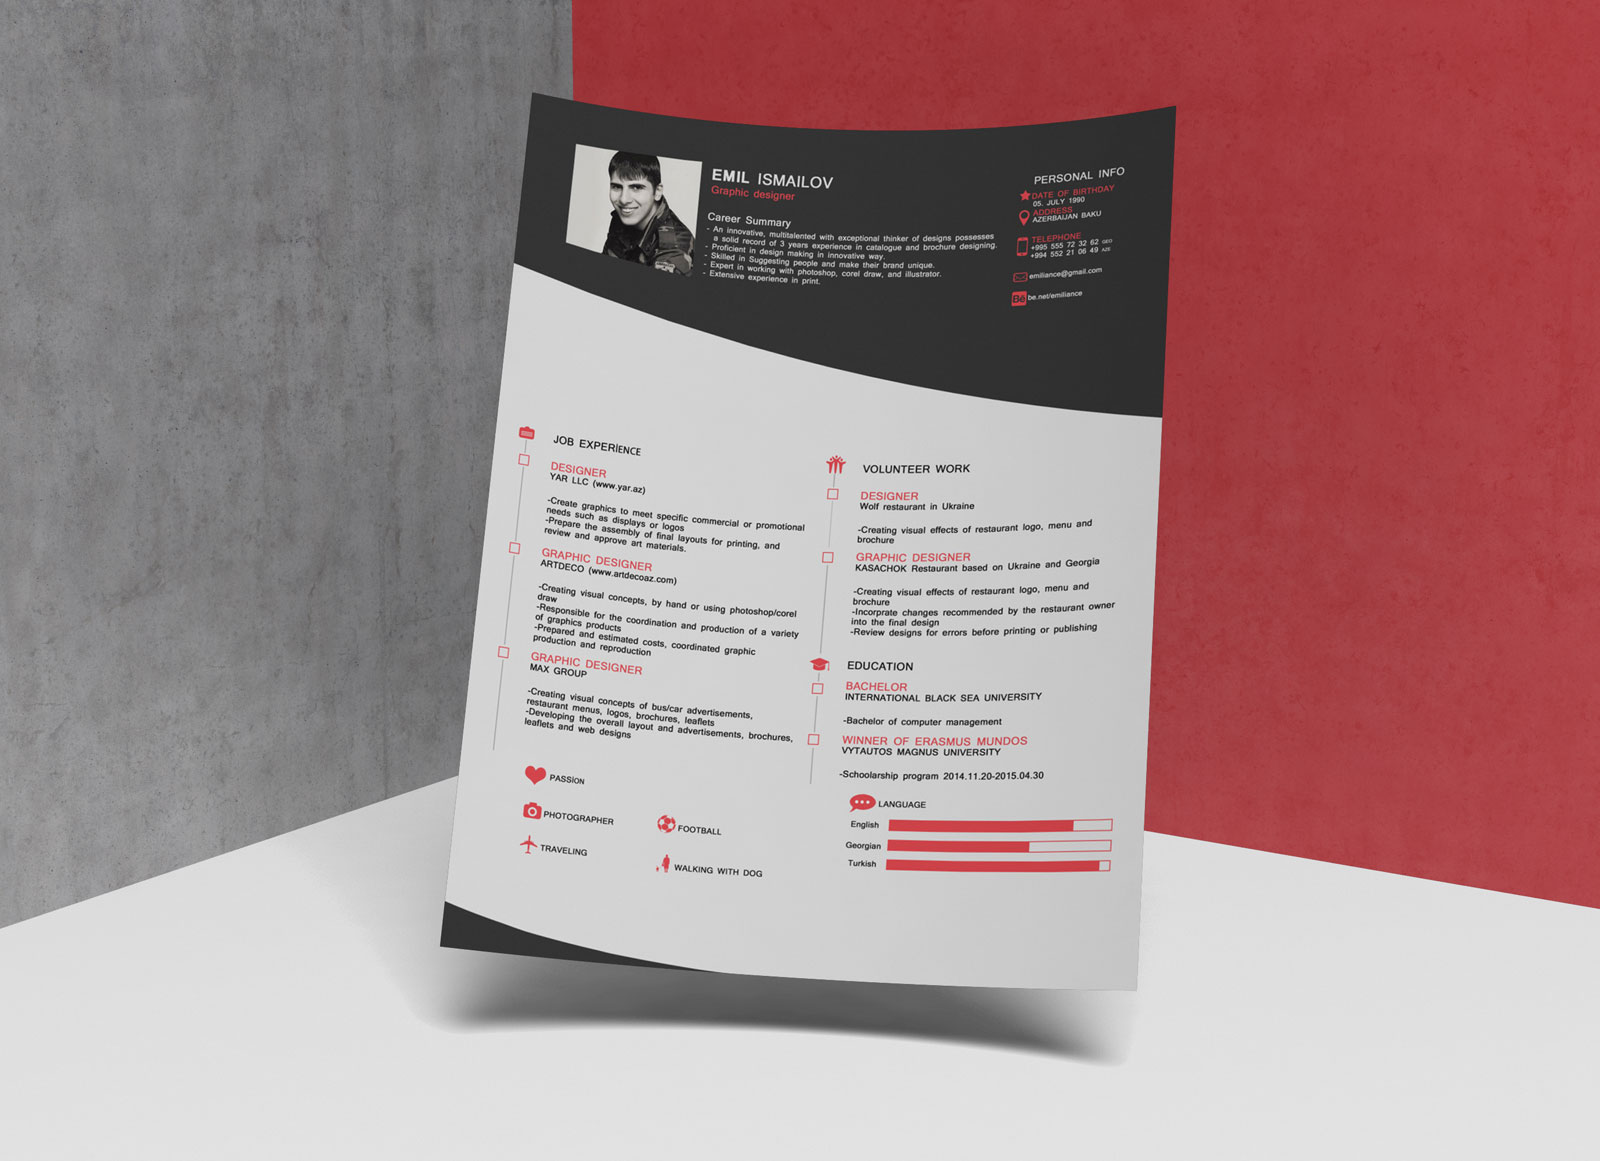 Free-Old-Style-CV-Template-in-PSD-Format-2